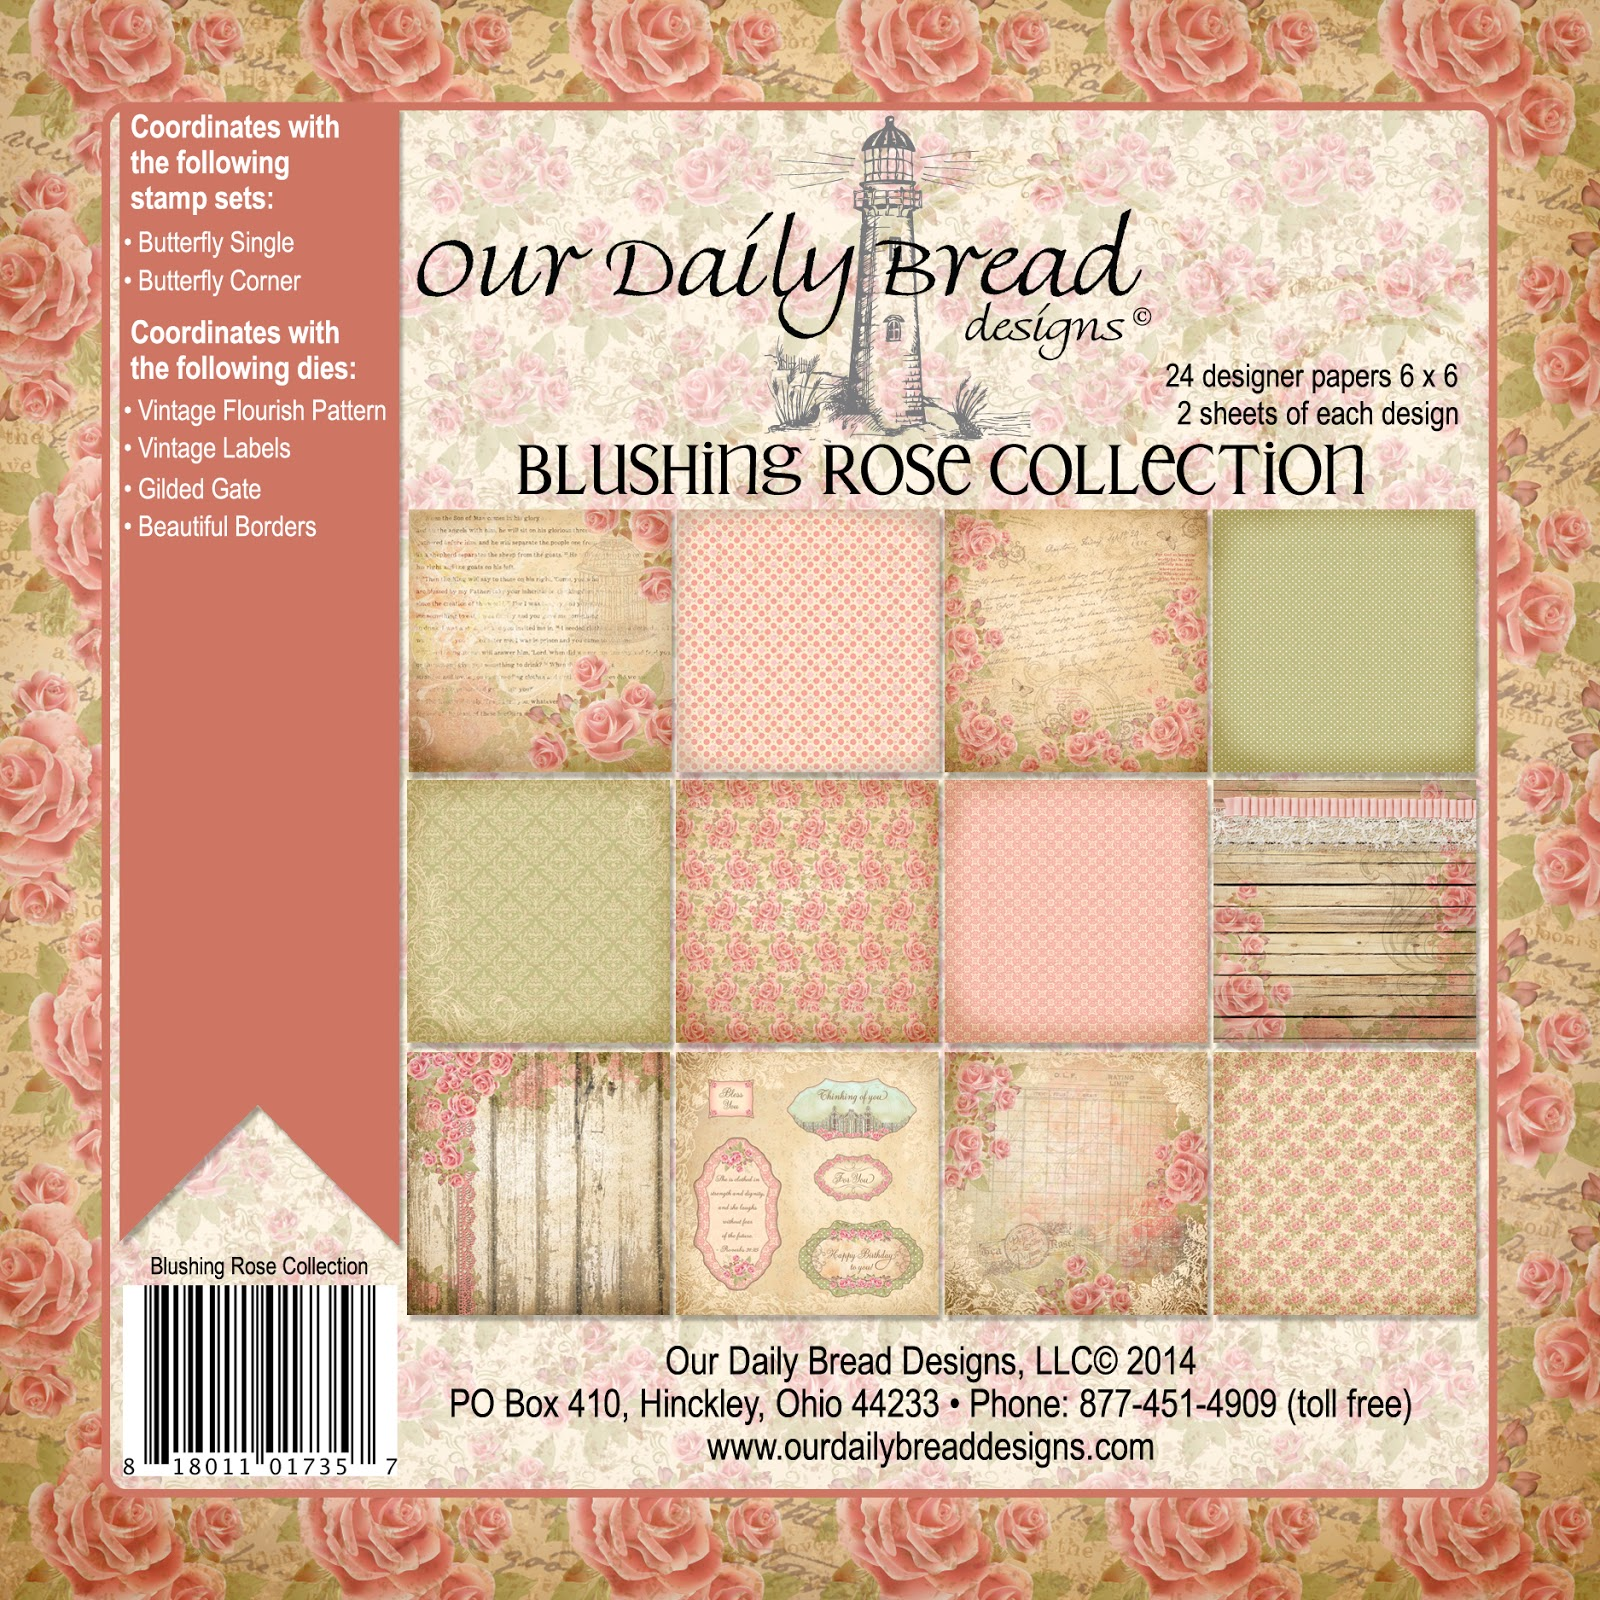 http://www.ourdailybreaddesigns.com/index.php/new-releases/2014-june.html